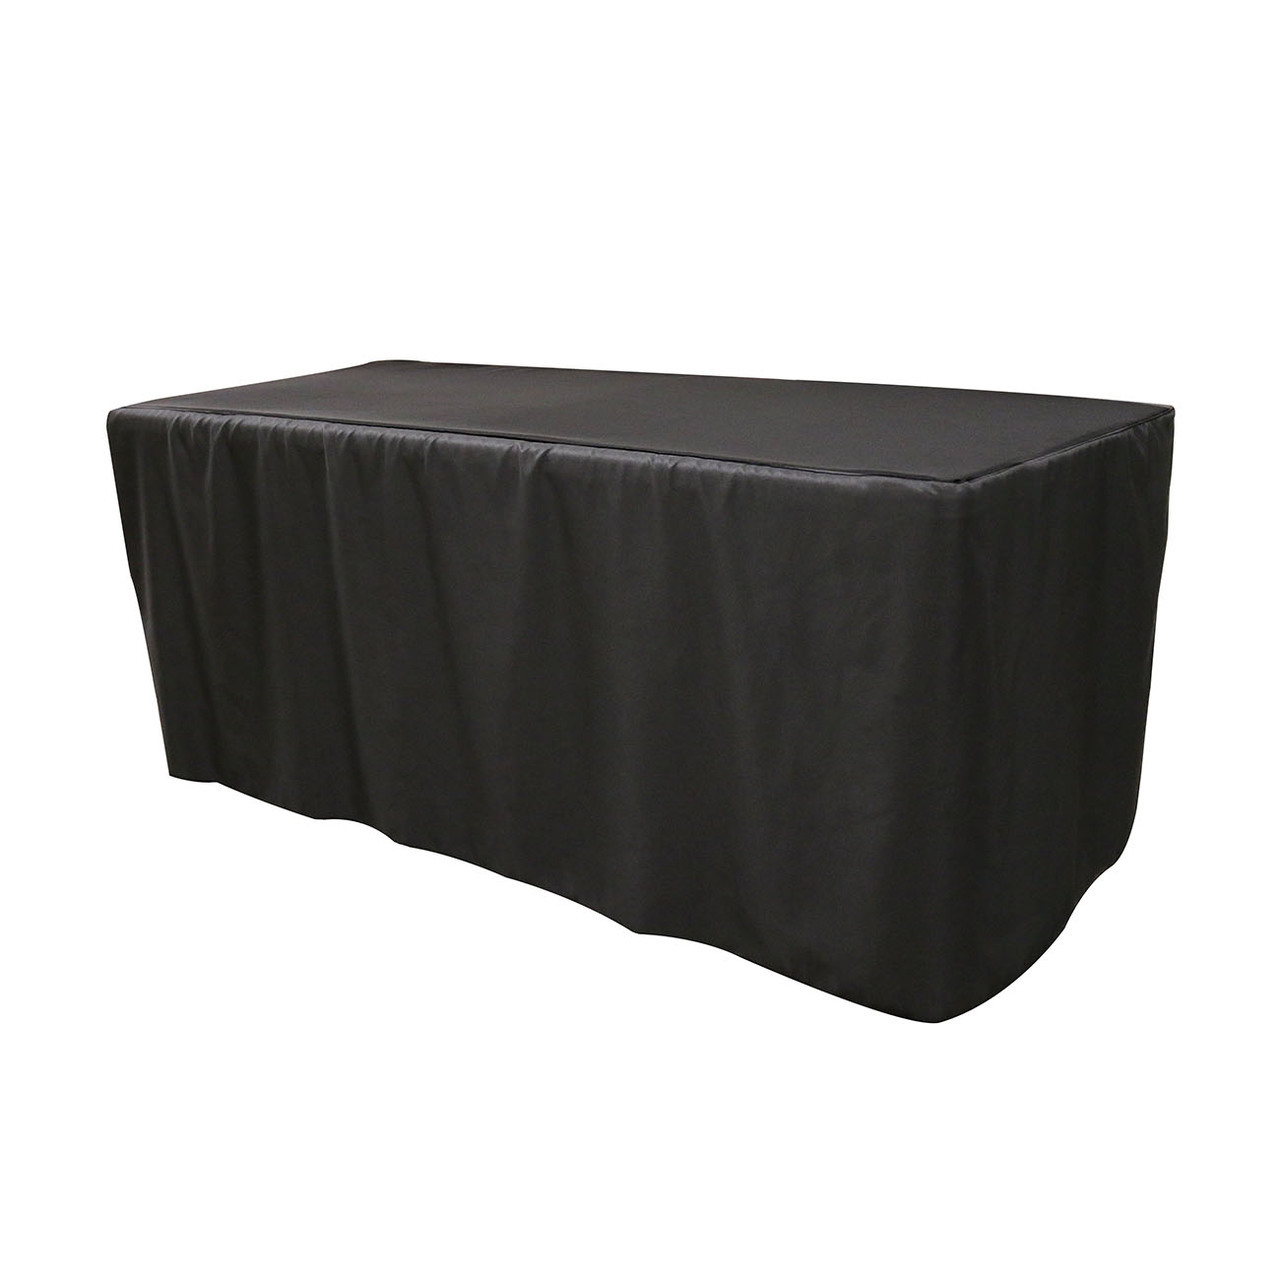 elite chair covers inc folding table and chairs for toddler custom 6ft cover apparel